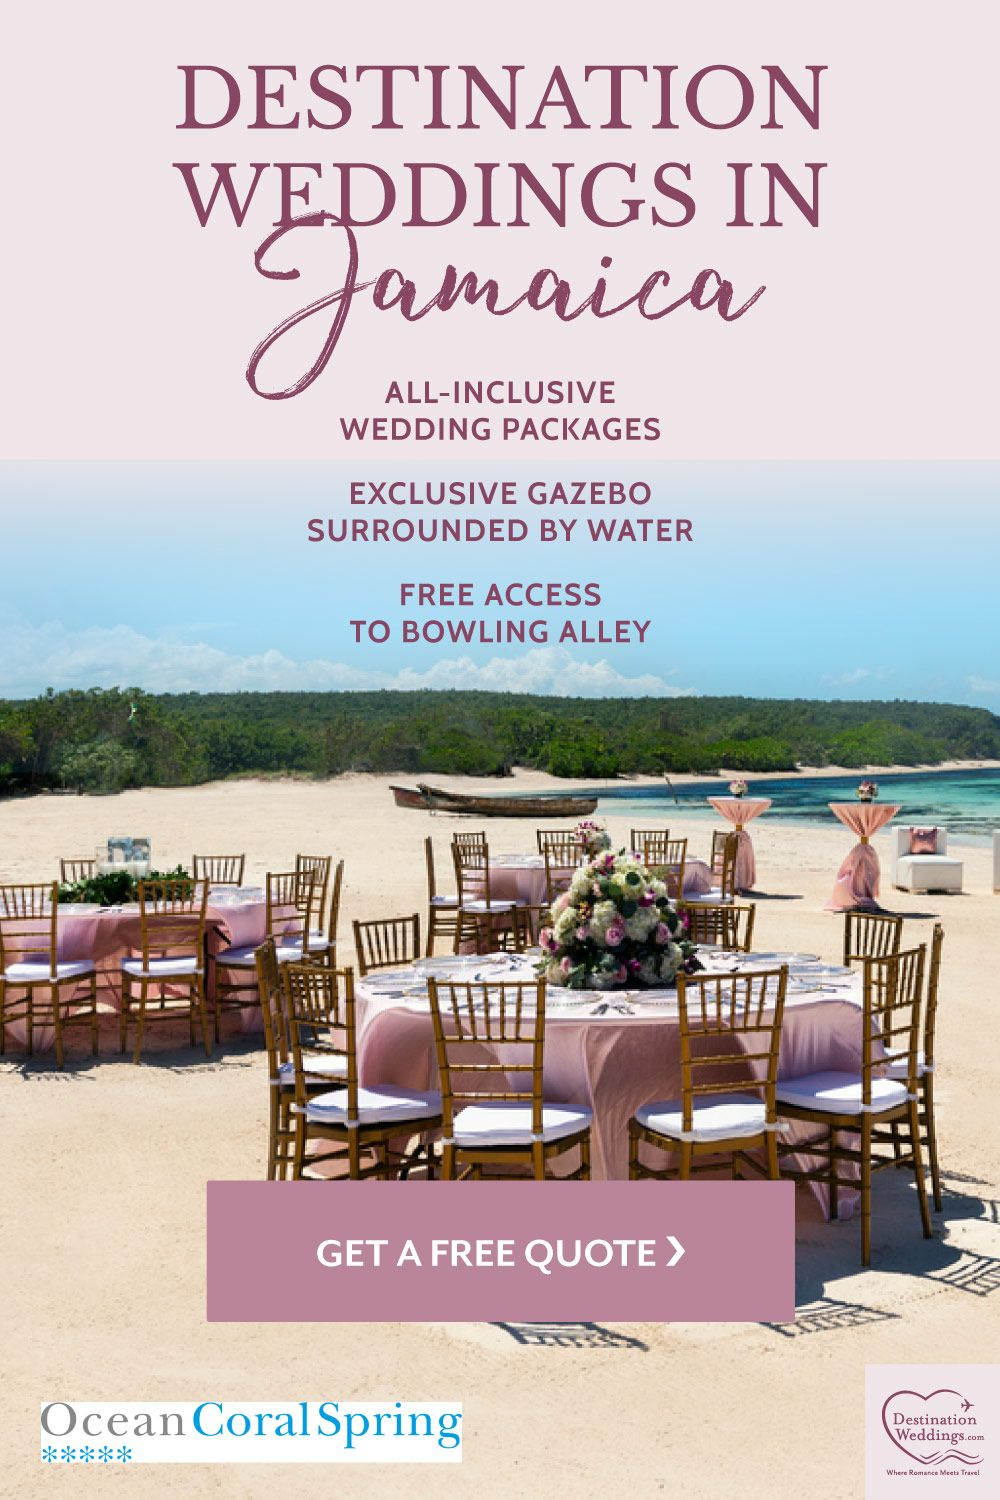 Destination Weddings In Jamaica At Ocean Coral Spring Resort Offer Affordable All In In 2020 Destination Wedding Jamaica Wedding Package All Inclusive Wedding Packages